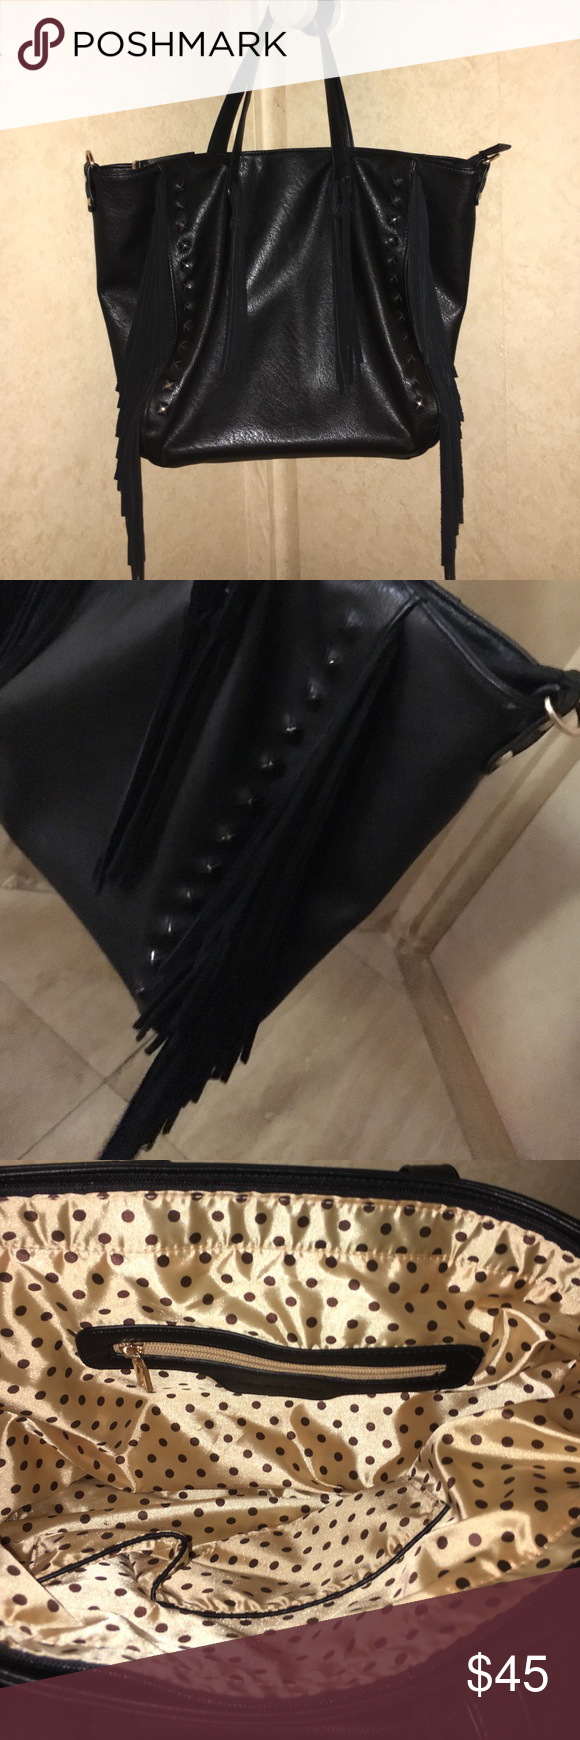 Black fringe tote Adorable black tote with fringe and stud accents - Roomy interior - Three interior pockets - Interior wall zipper pocket - Lipstick and cell phone wall pockets, - Lined with signature satin polka dot lining.        (Perfect condition) Melie Bianco Bags Totes